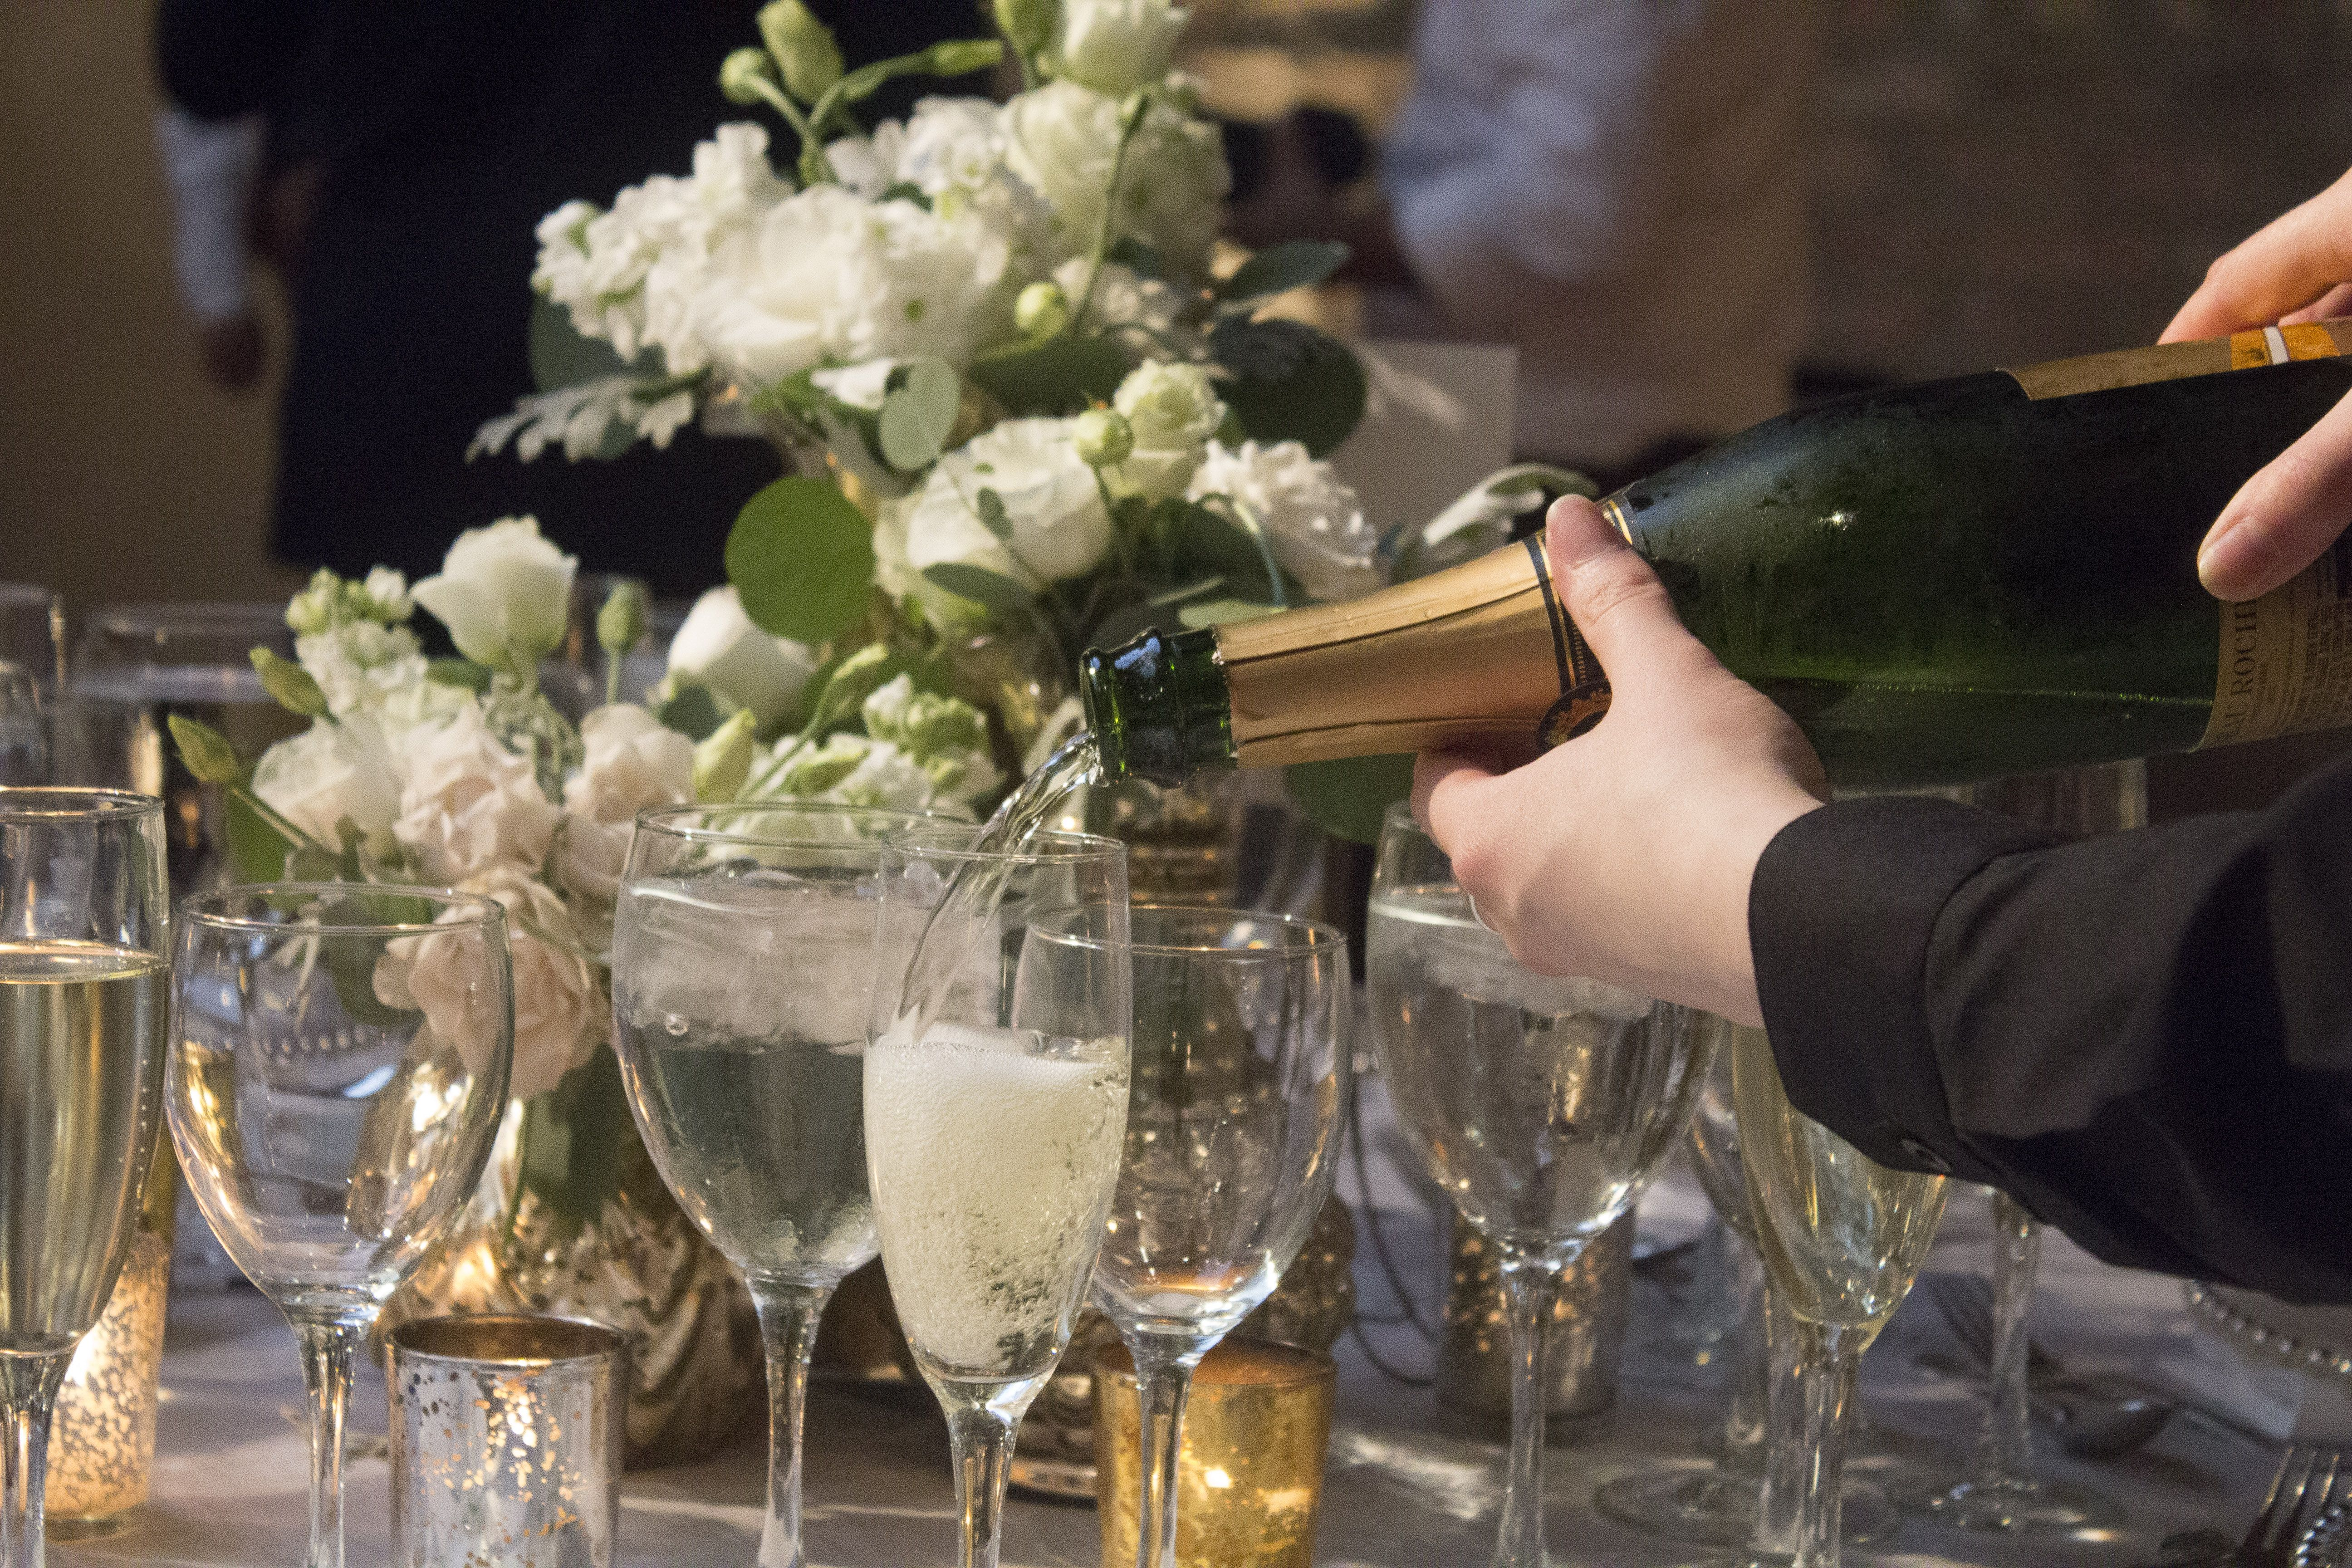 wedding table champagne drinkingglasses flowers centerpiece candles